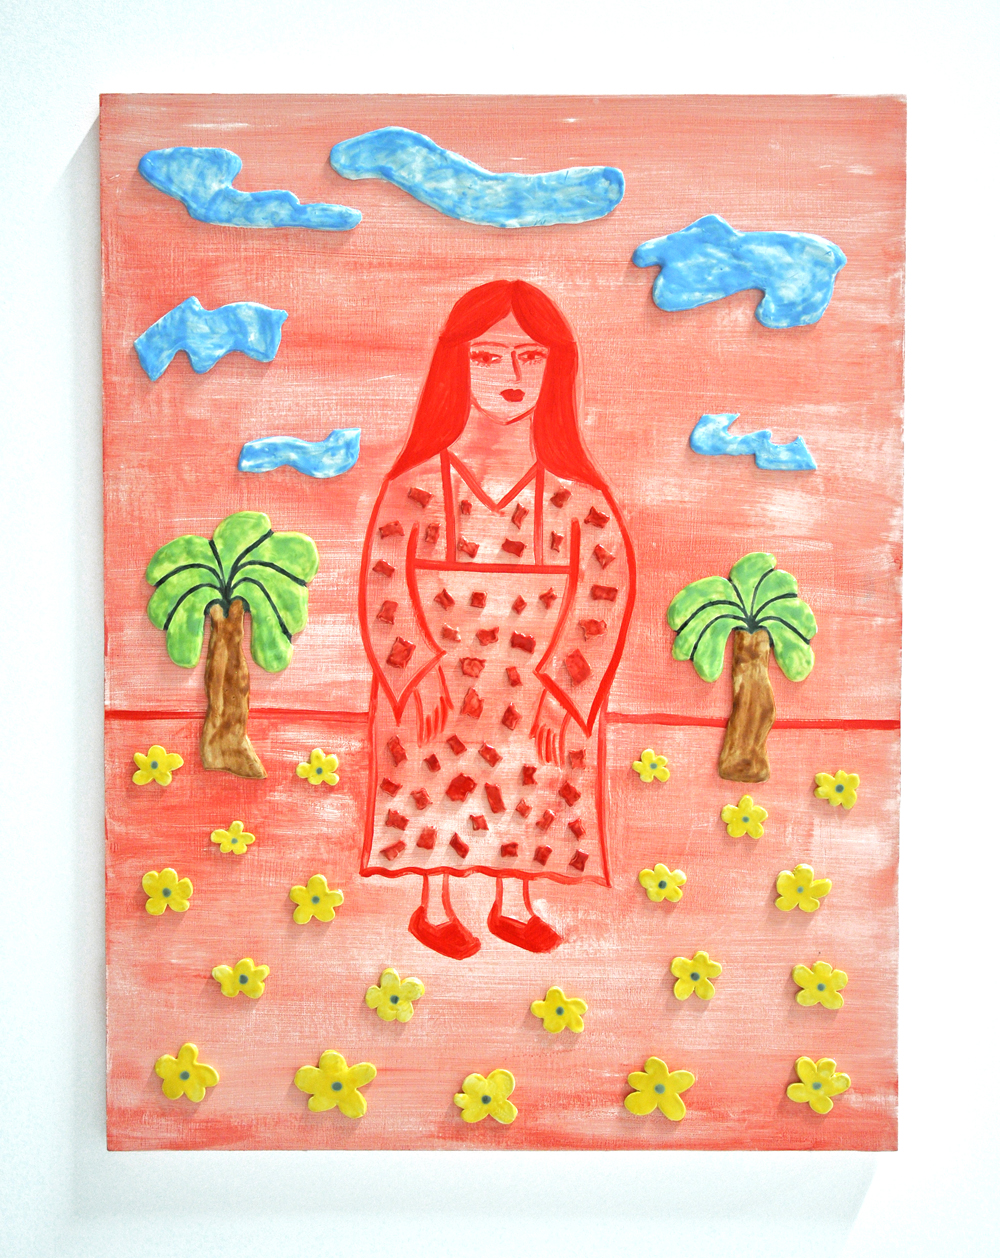 Maryam Yousif, PUABI AND TWO PALMS (RED), 36 x 48 in, Acrylic and glazed porcelain, 2019